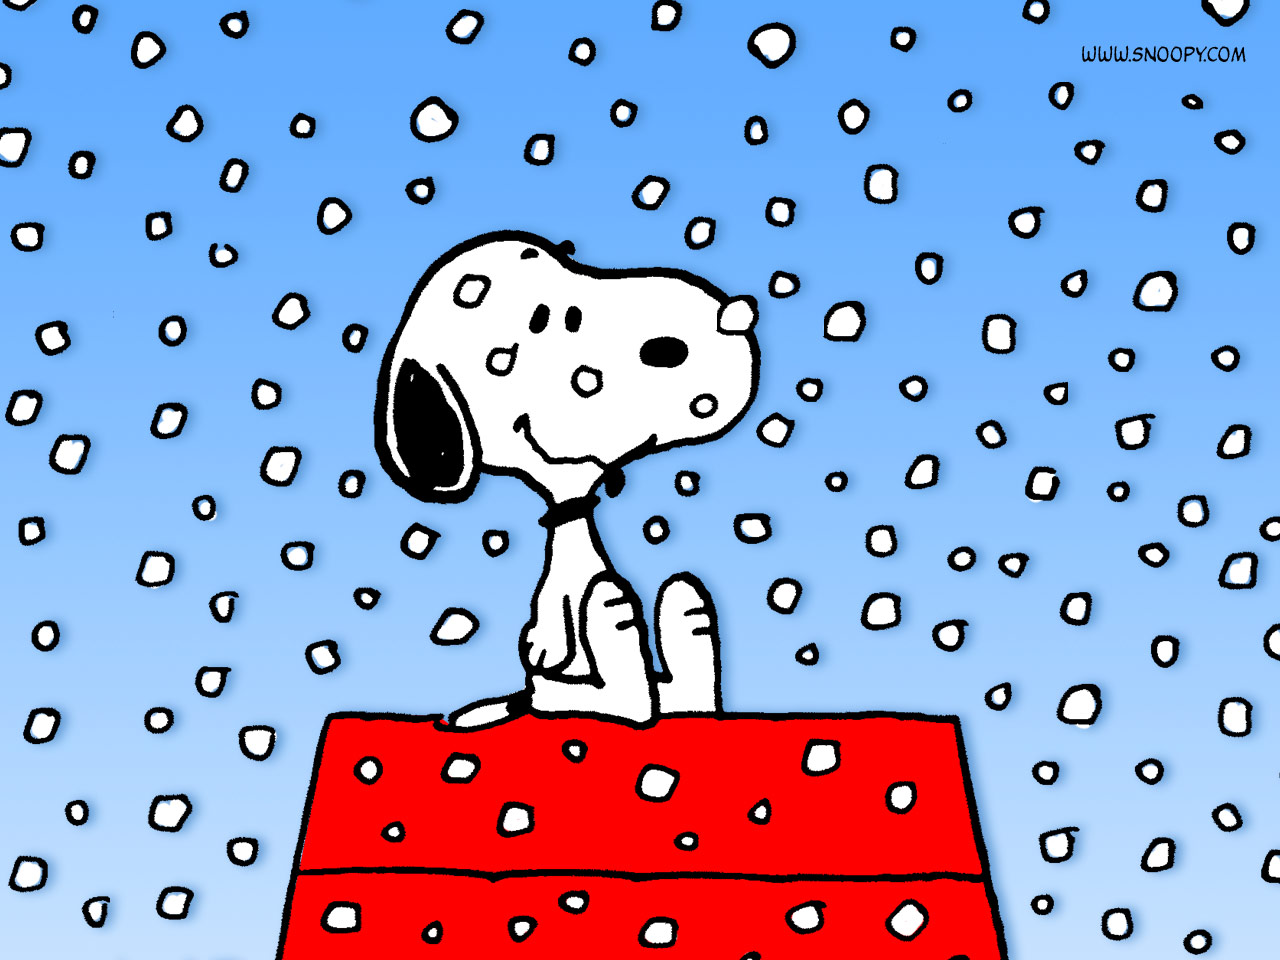 Snoopy clipart winter picture black and white Free Snoopy Winter Cliparts, Download Free Clip Art, Free ... picture black and white